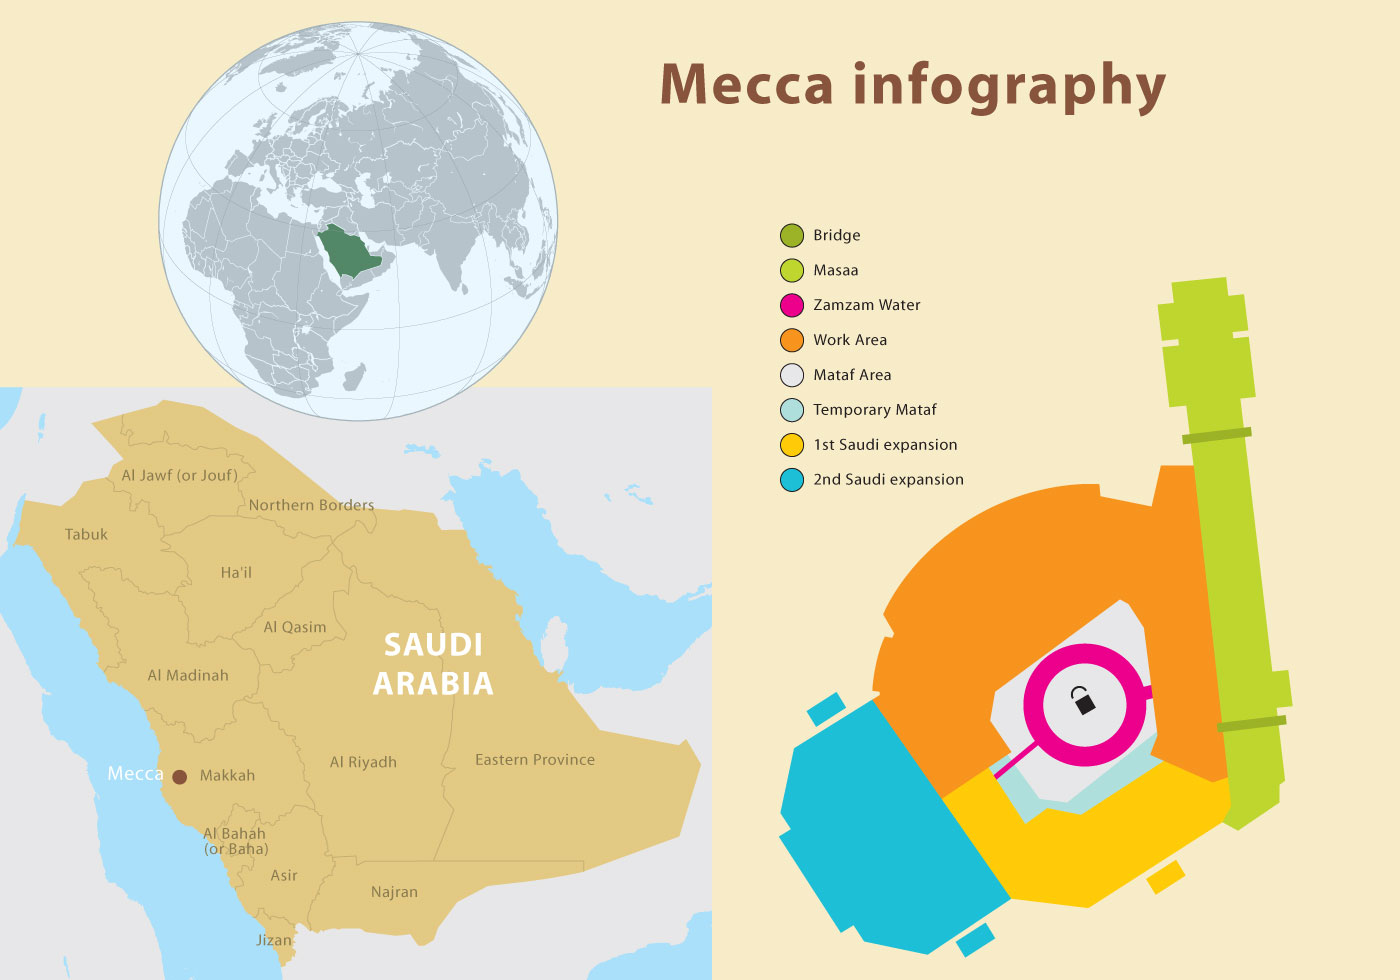 mecca infography